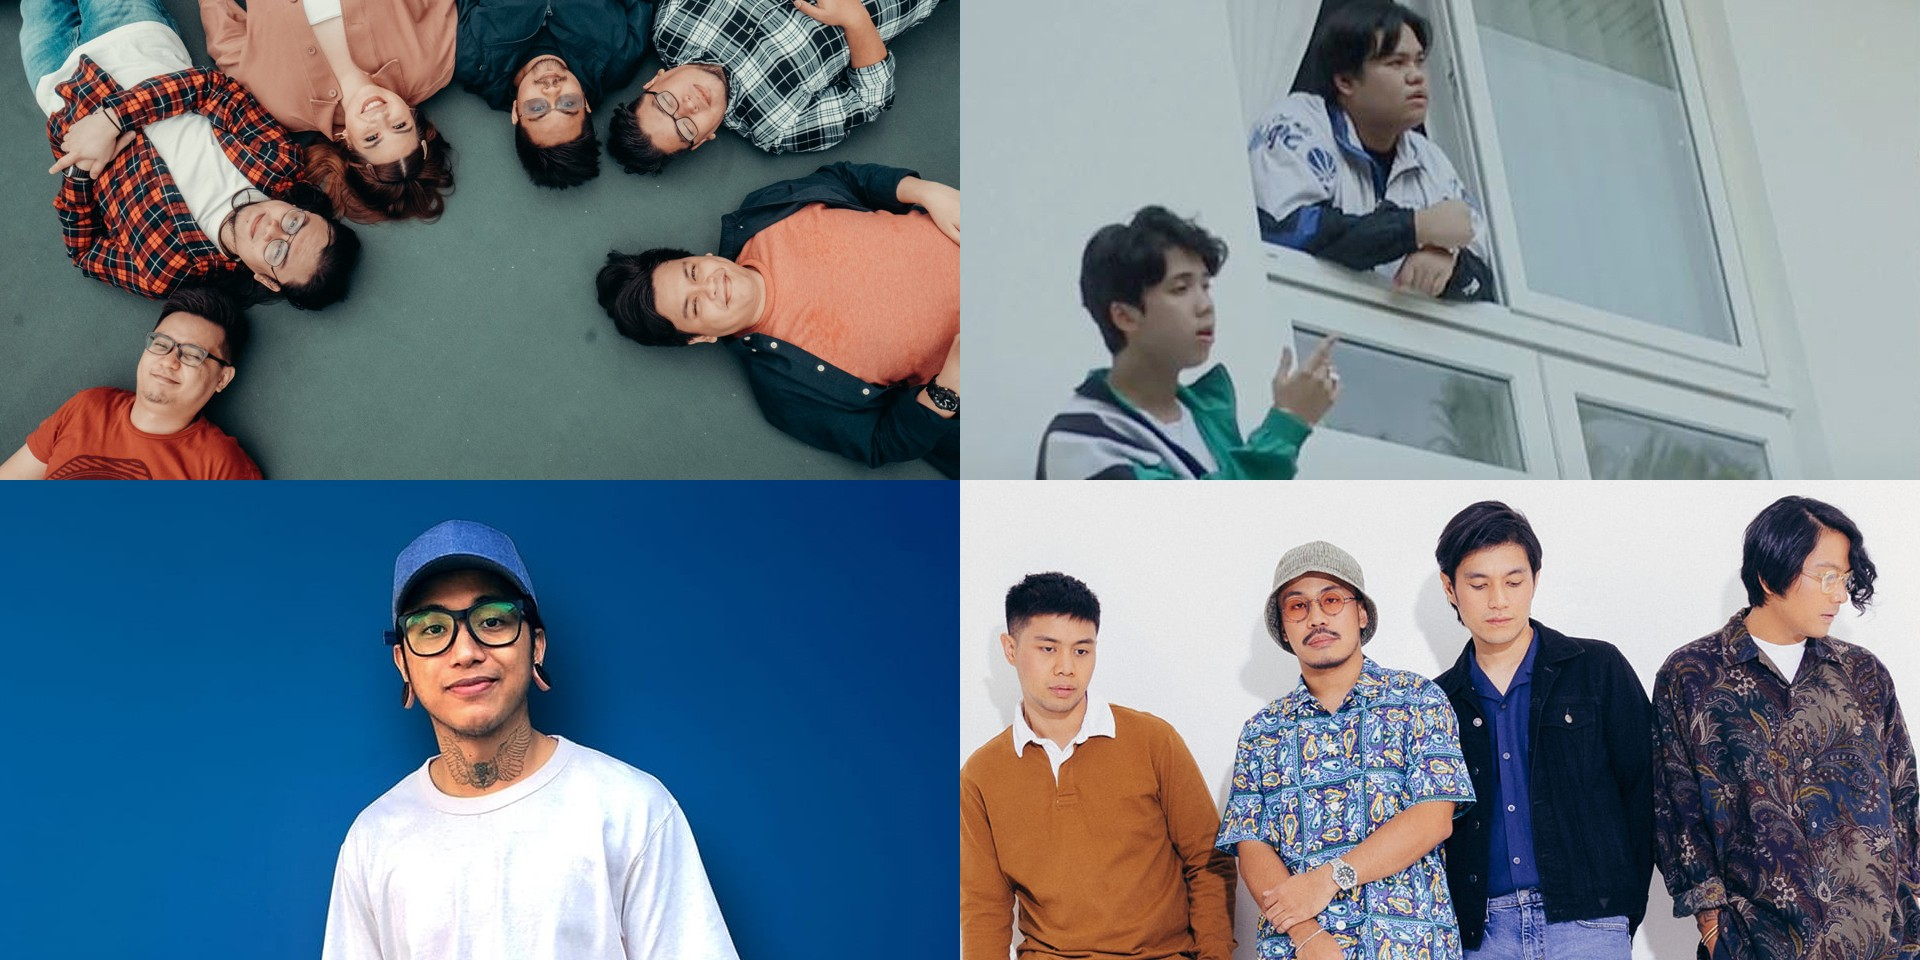 Autotelic, She's Only Sixteen, firegod, dred., and more release new music – listen